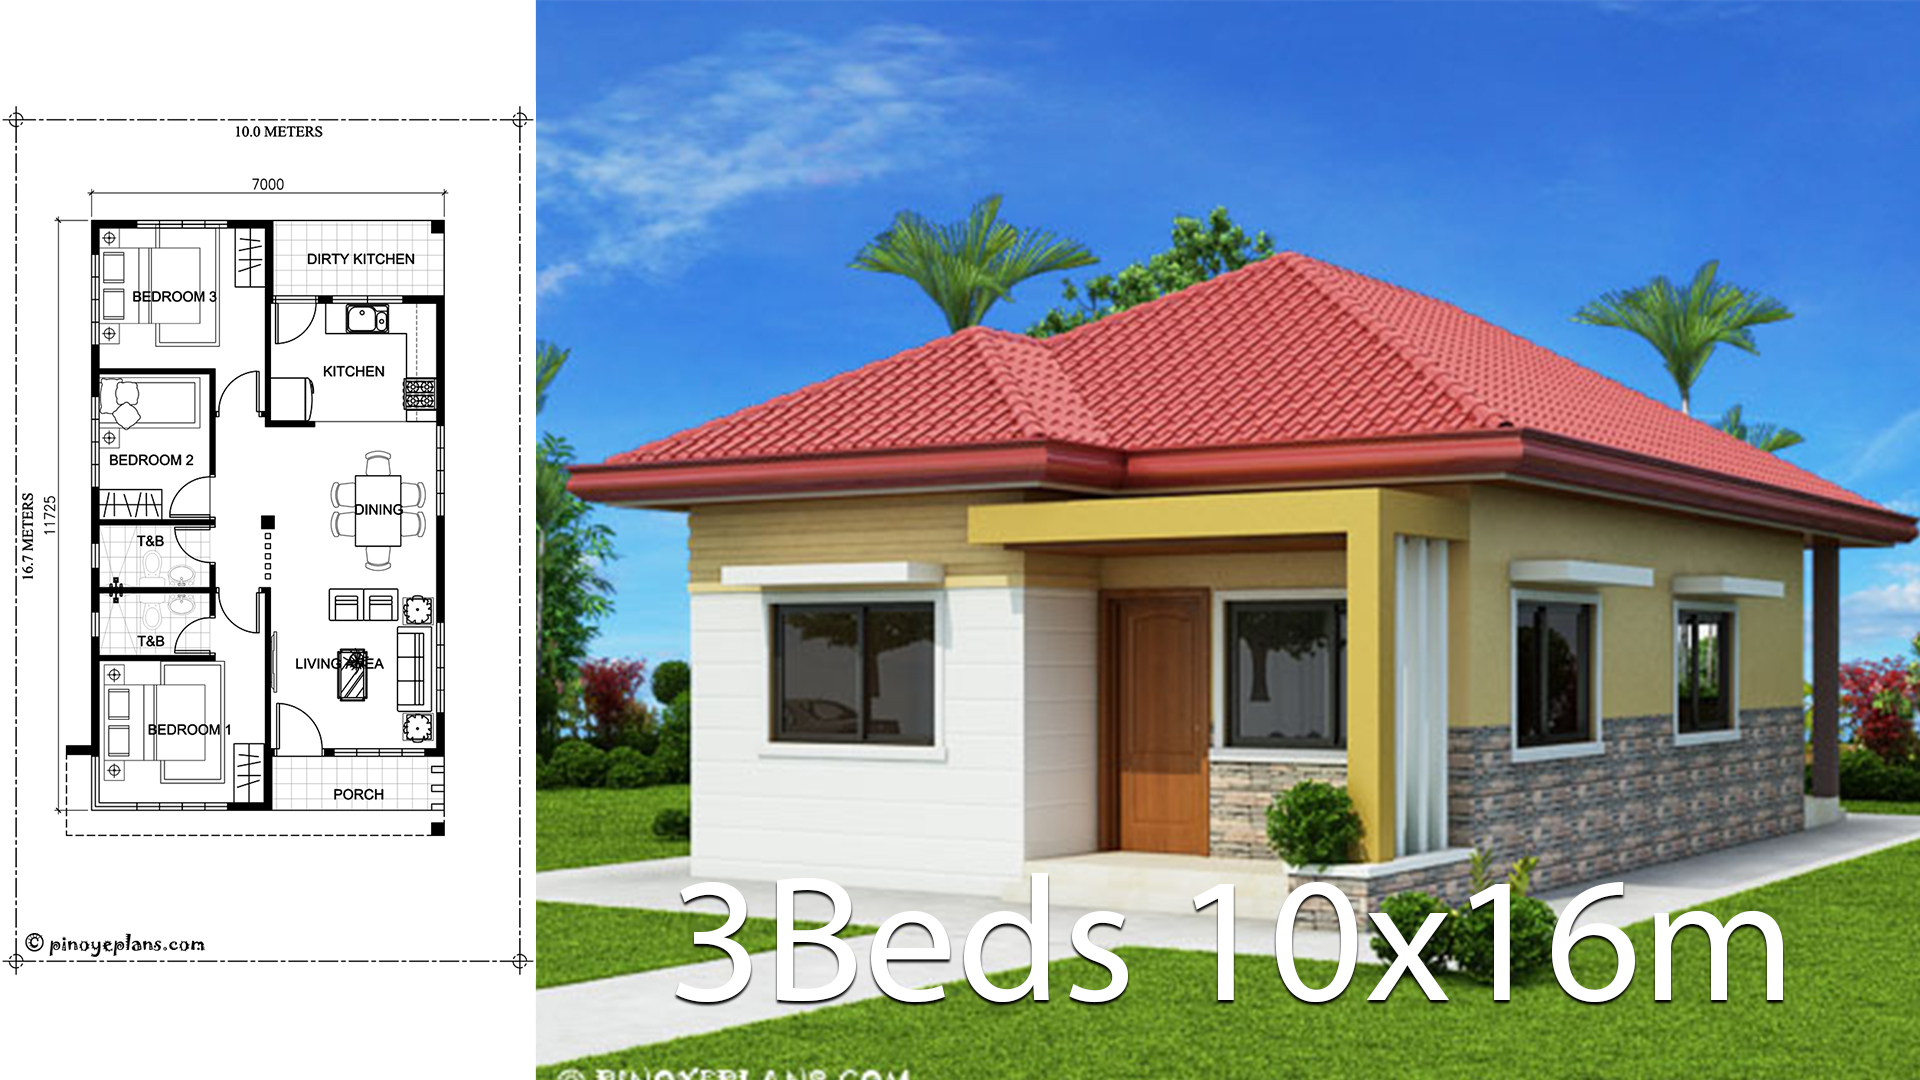 Home Design 10x16m With 3 Bedrooms